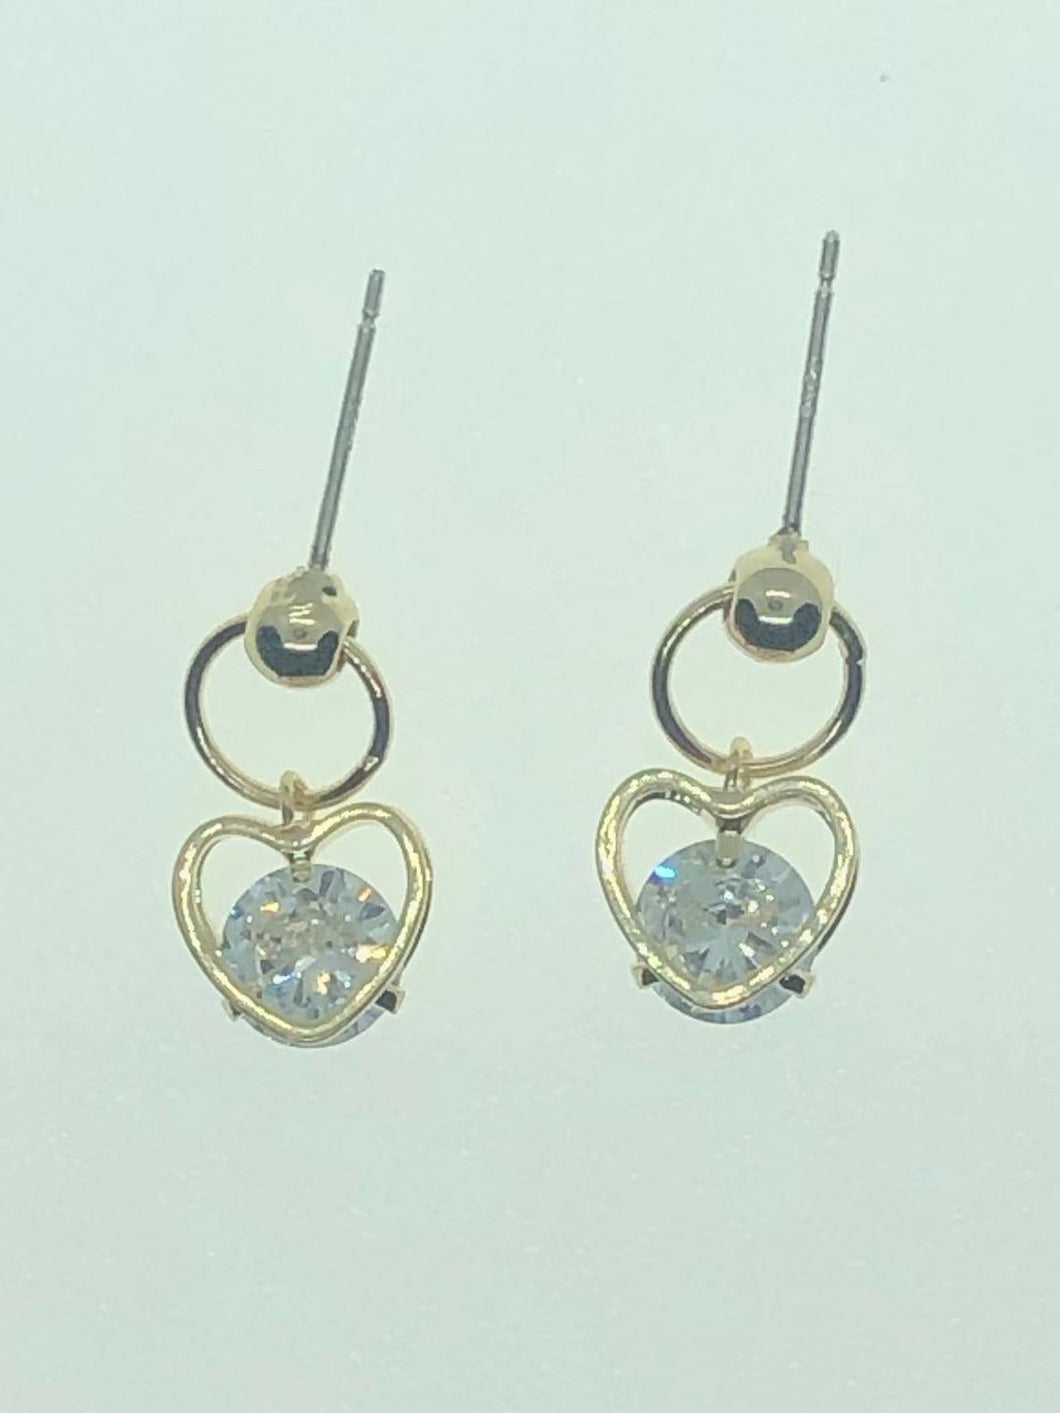 22-JM-JA05041, Heart Pendant Zircon Diamond Earring ($22.80 for 12)